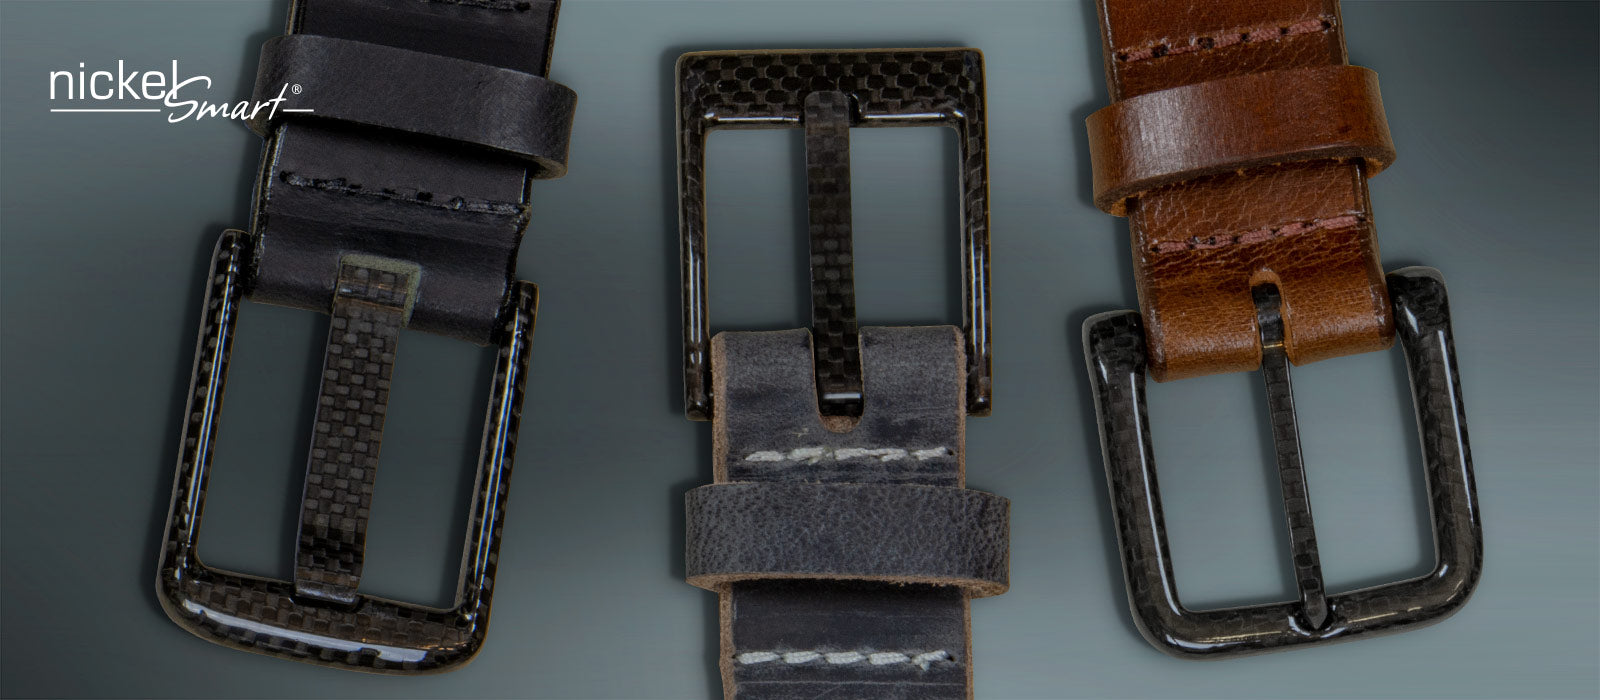 Carbon Fiber Buckles sewn onto genuine leather straps.  No Metal in these belts. Will not set off metal detectors.